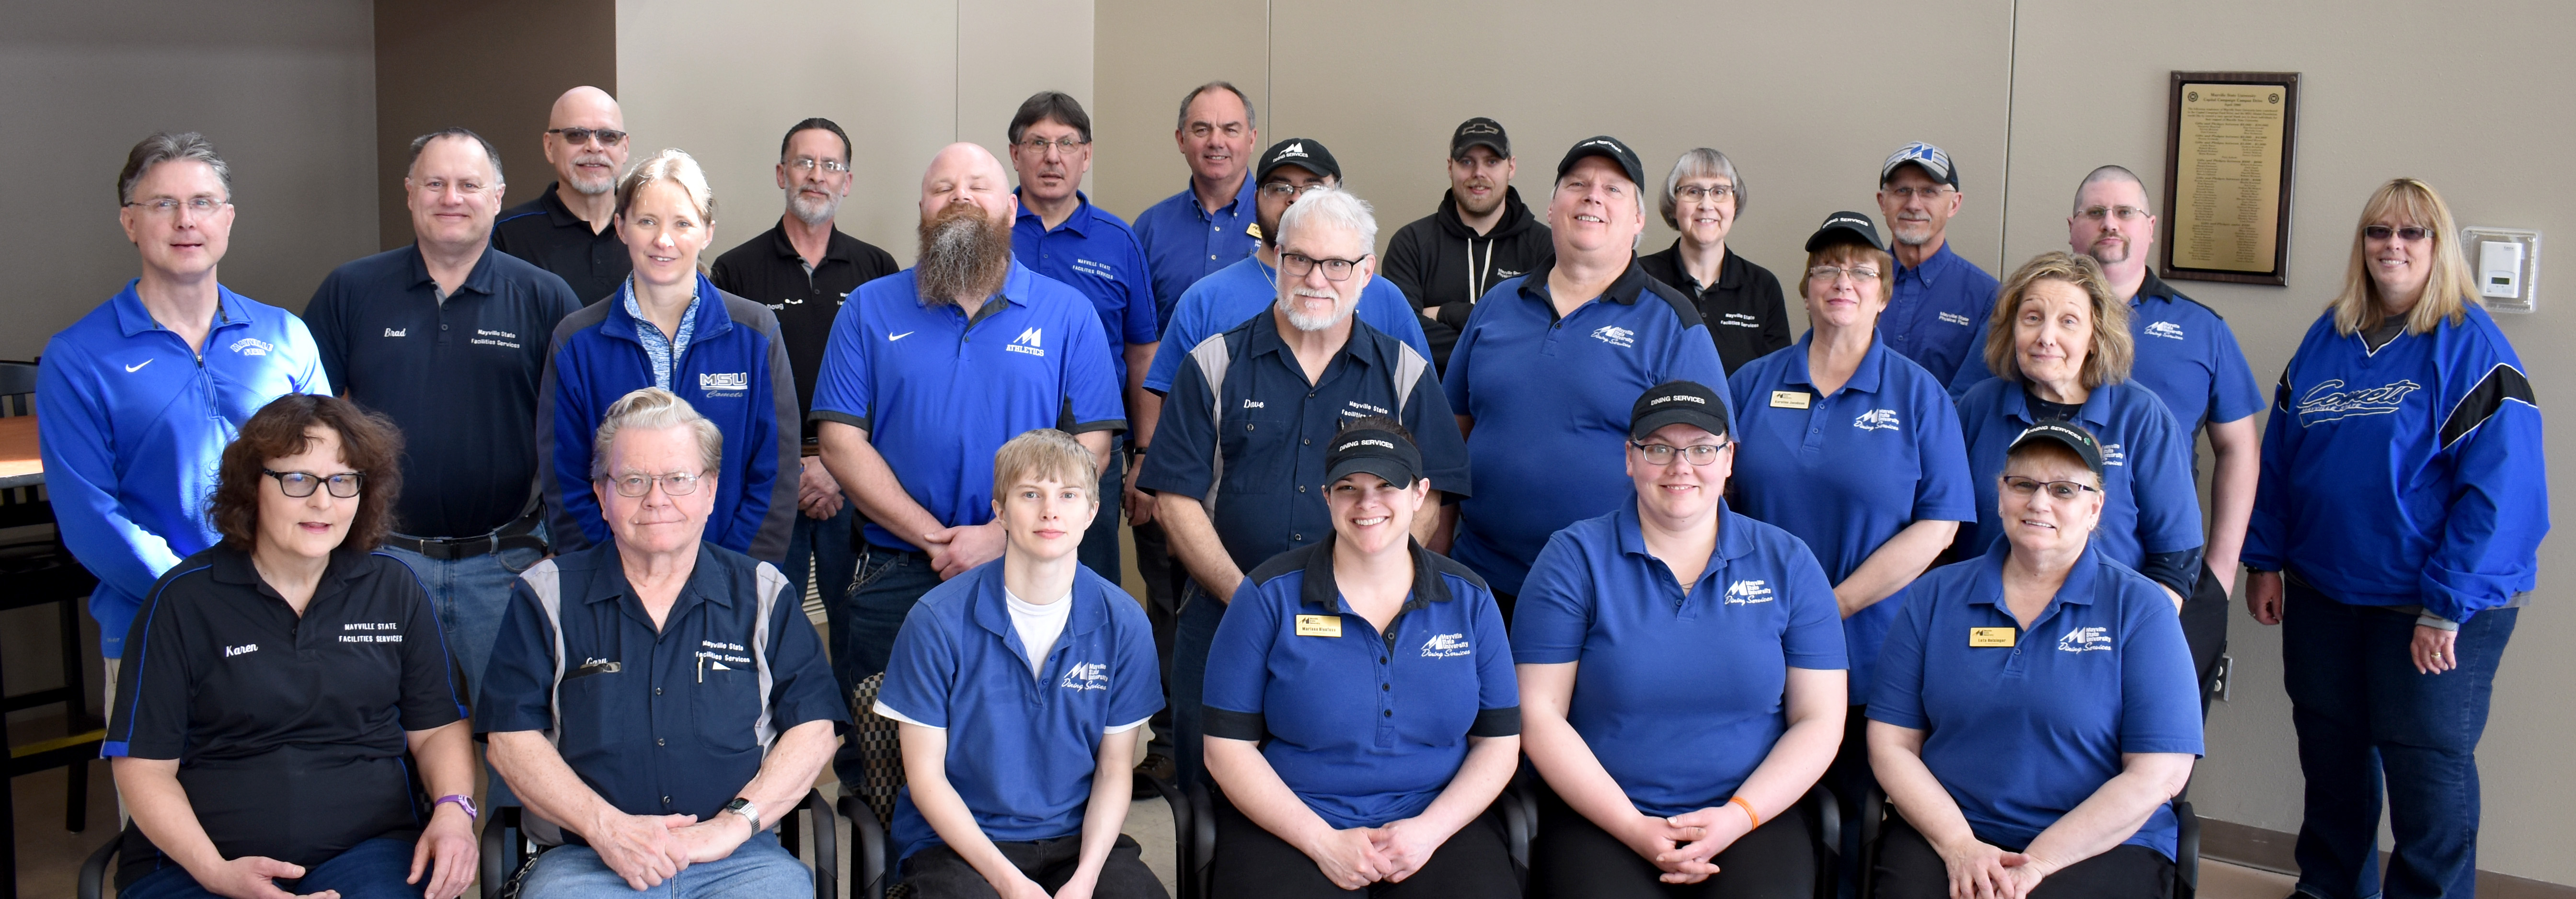 facilities physical plant and dining services staff.jpg